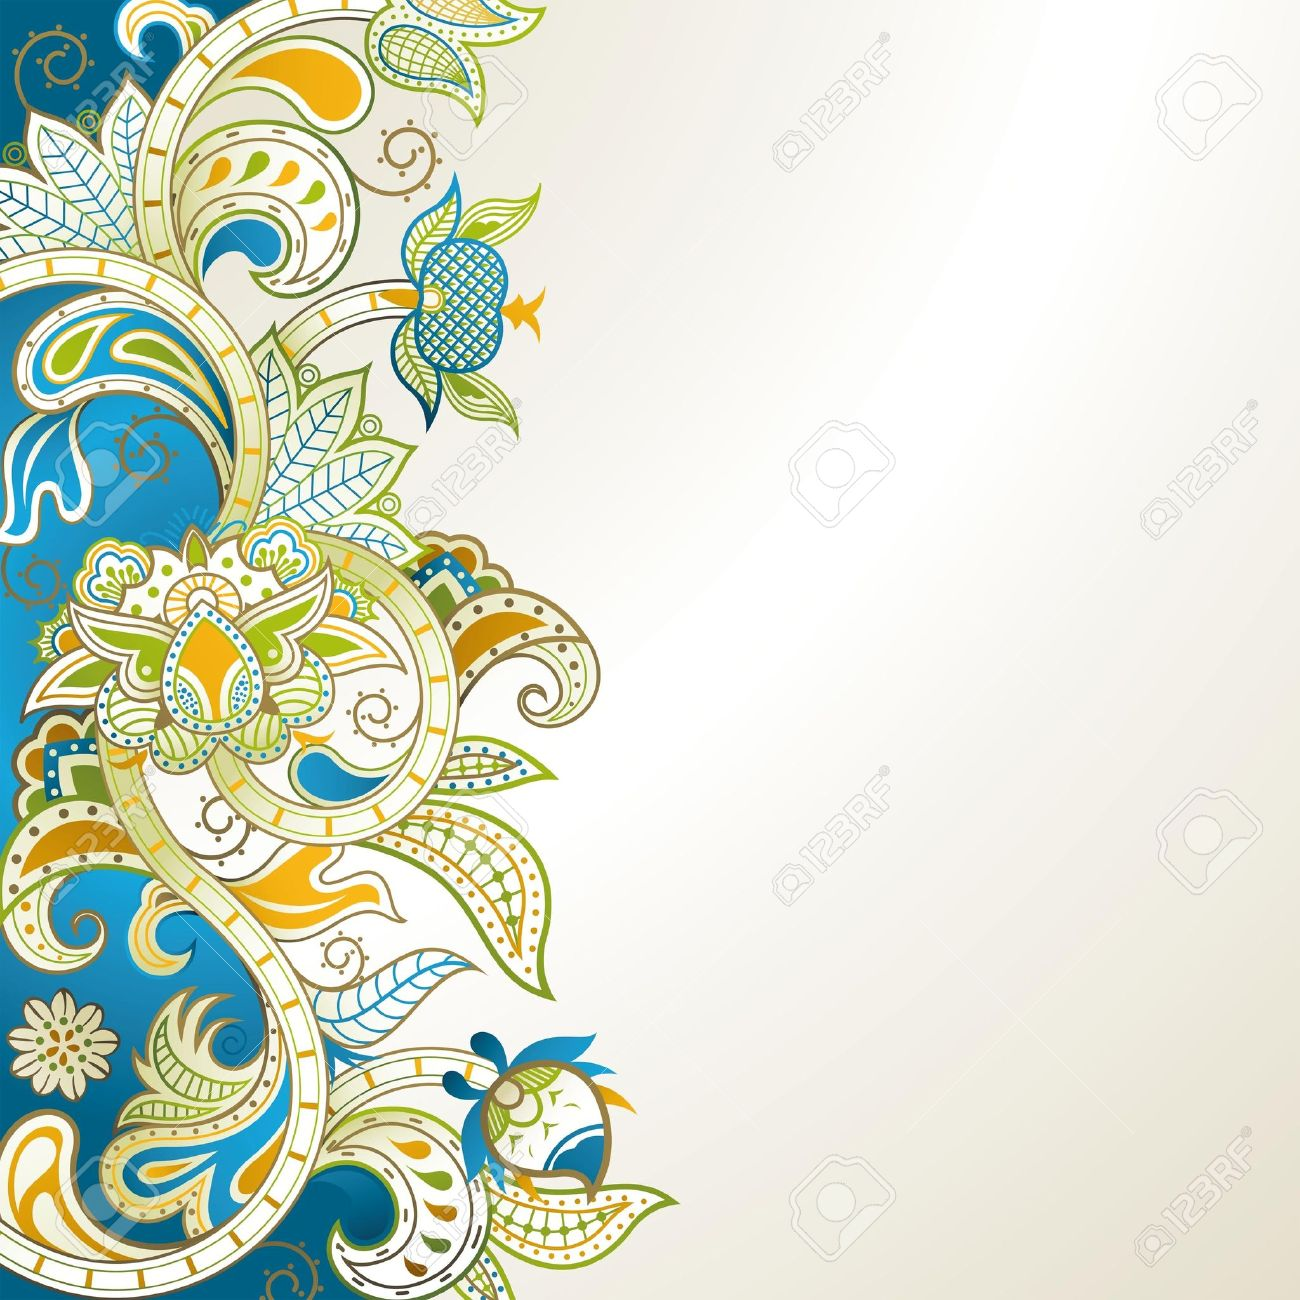 Abstract Blue Floral Stock Vector - 13950418